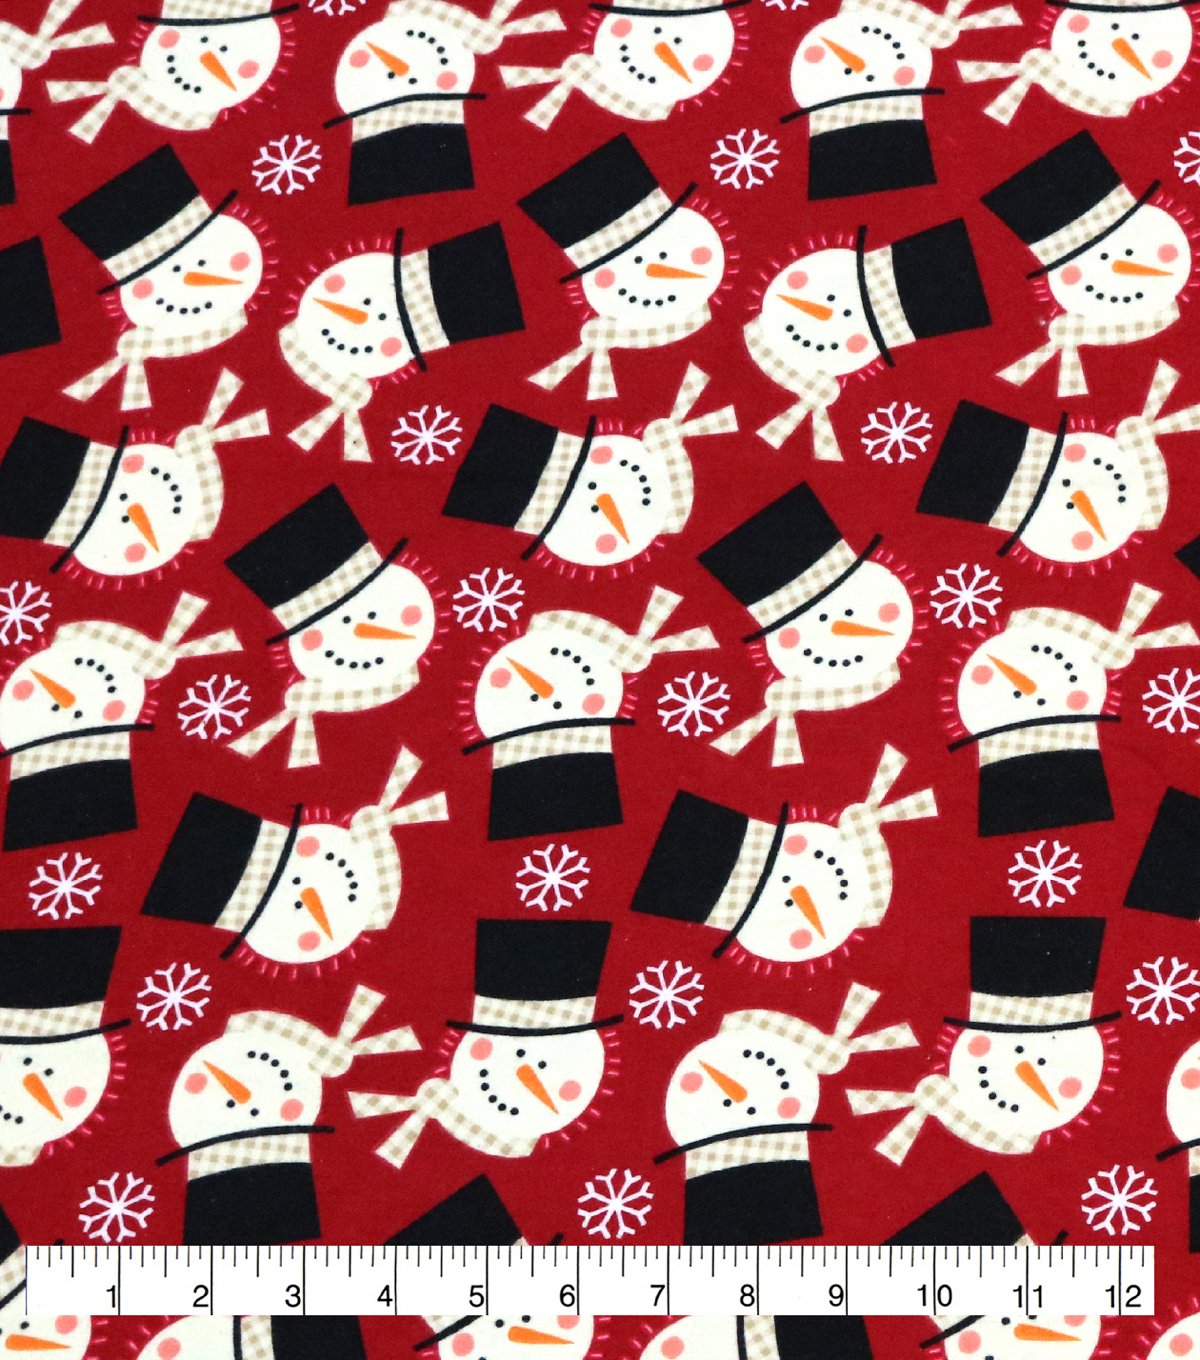 Super Snuggle Flannel Fabric-Snowman Faces Tossed